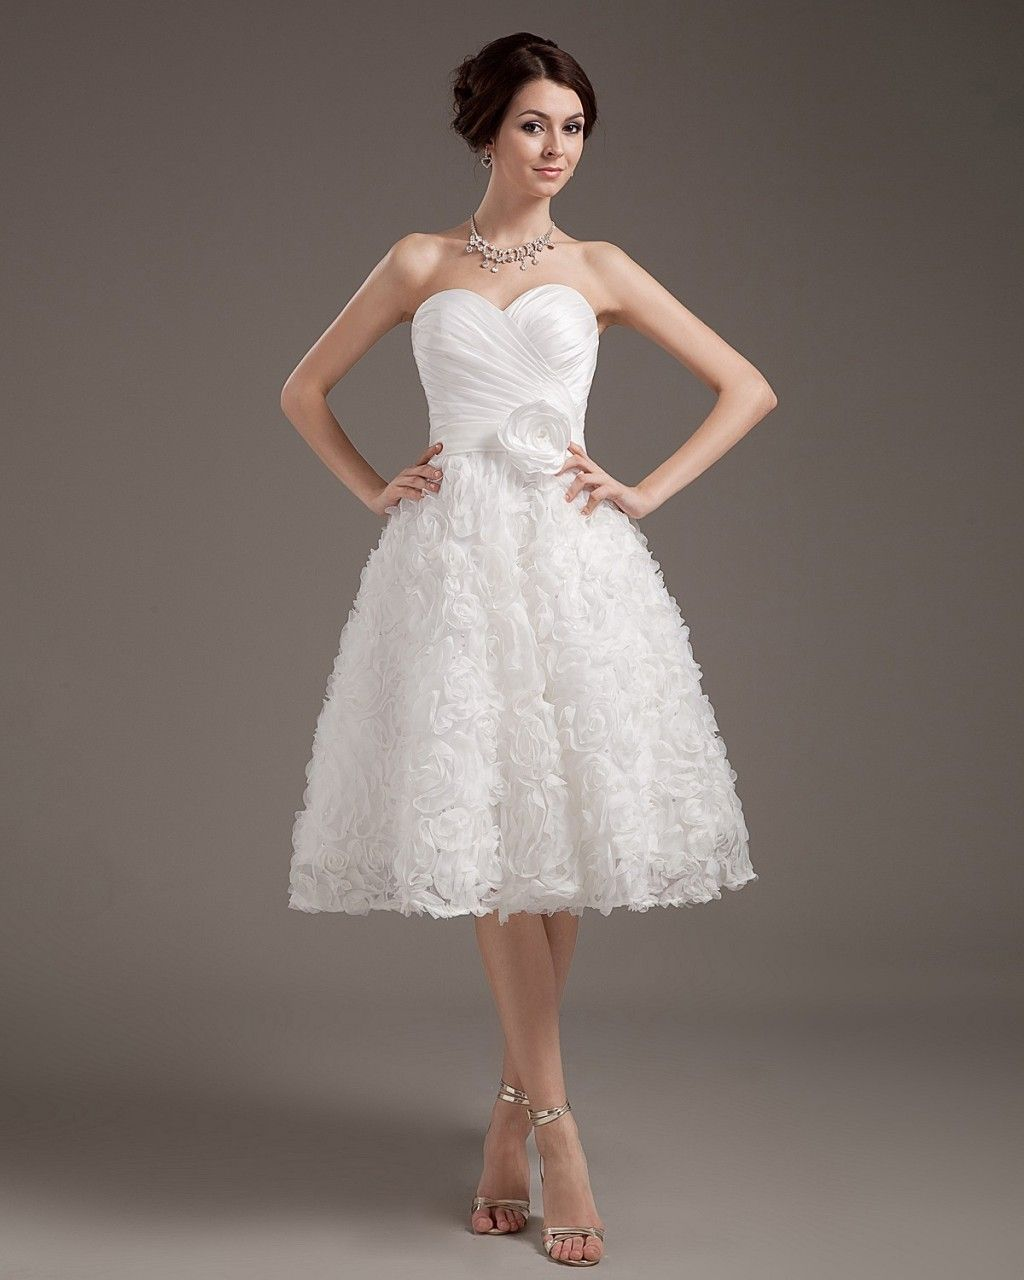 Mini white wedding dress  Cheap Short Wedding Dresses   Wedding Dresses Elegant Short Mini